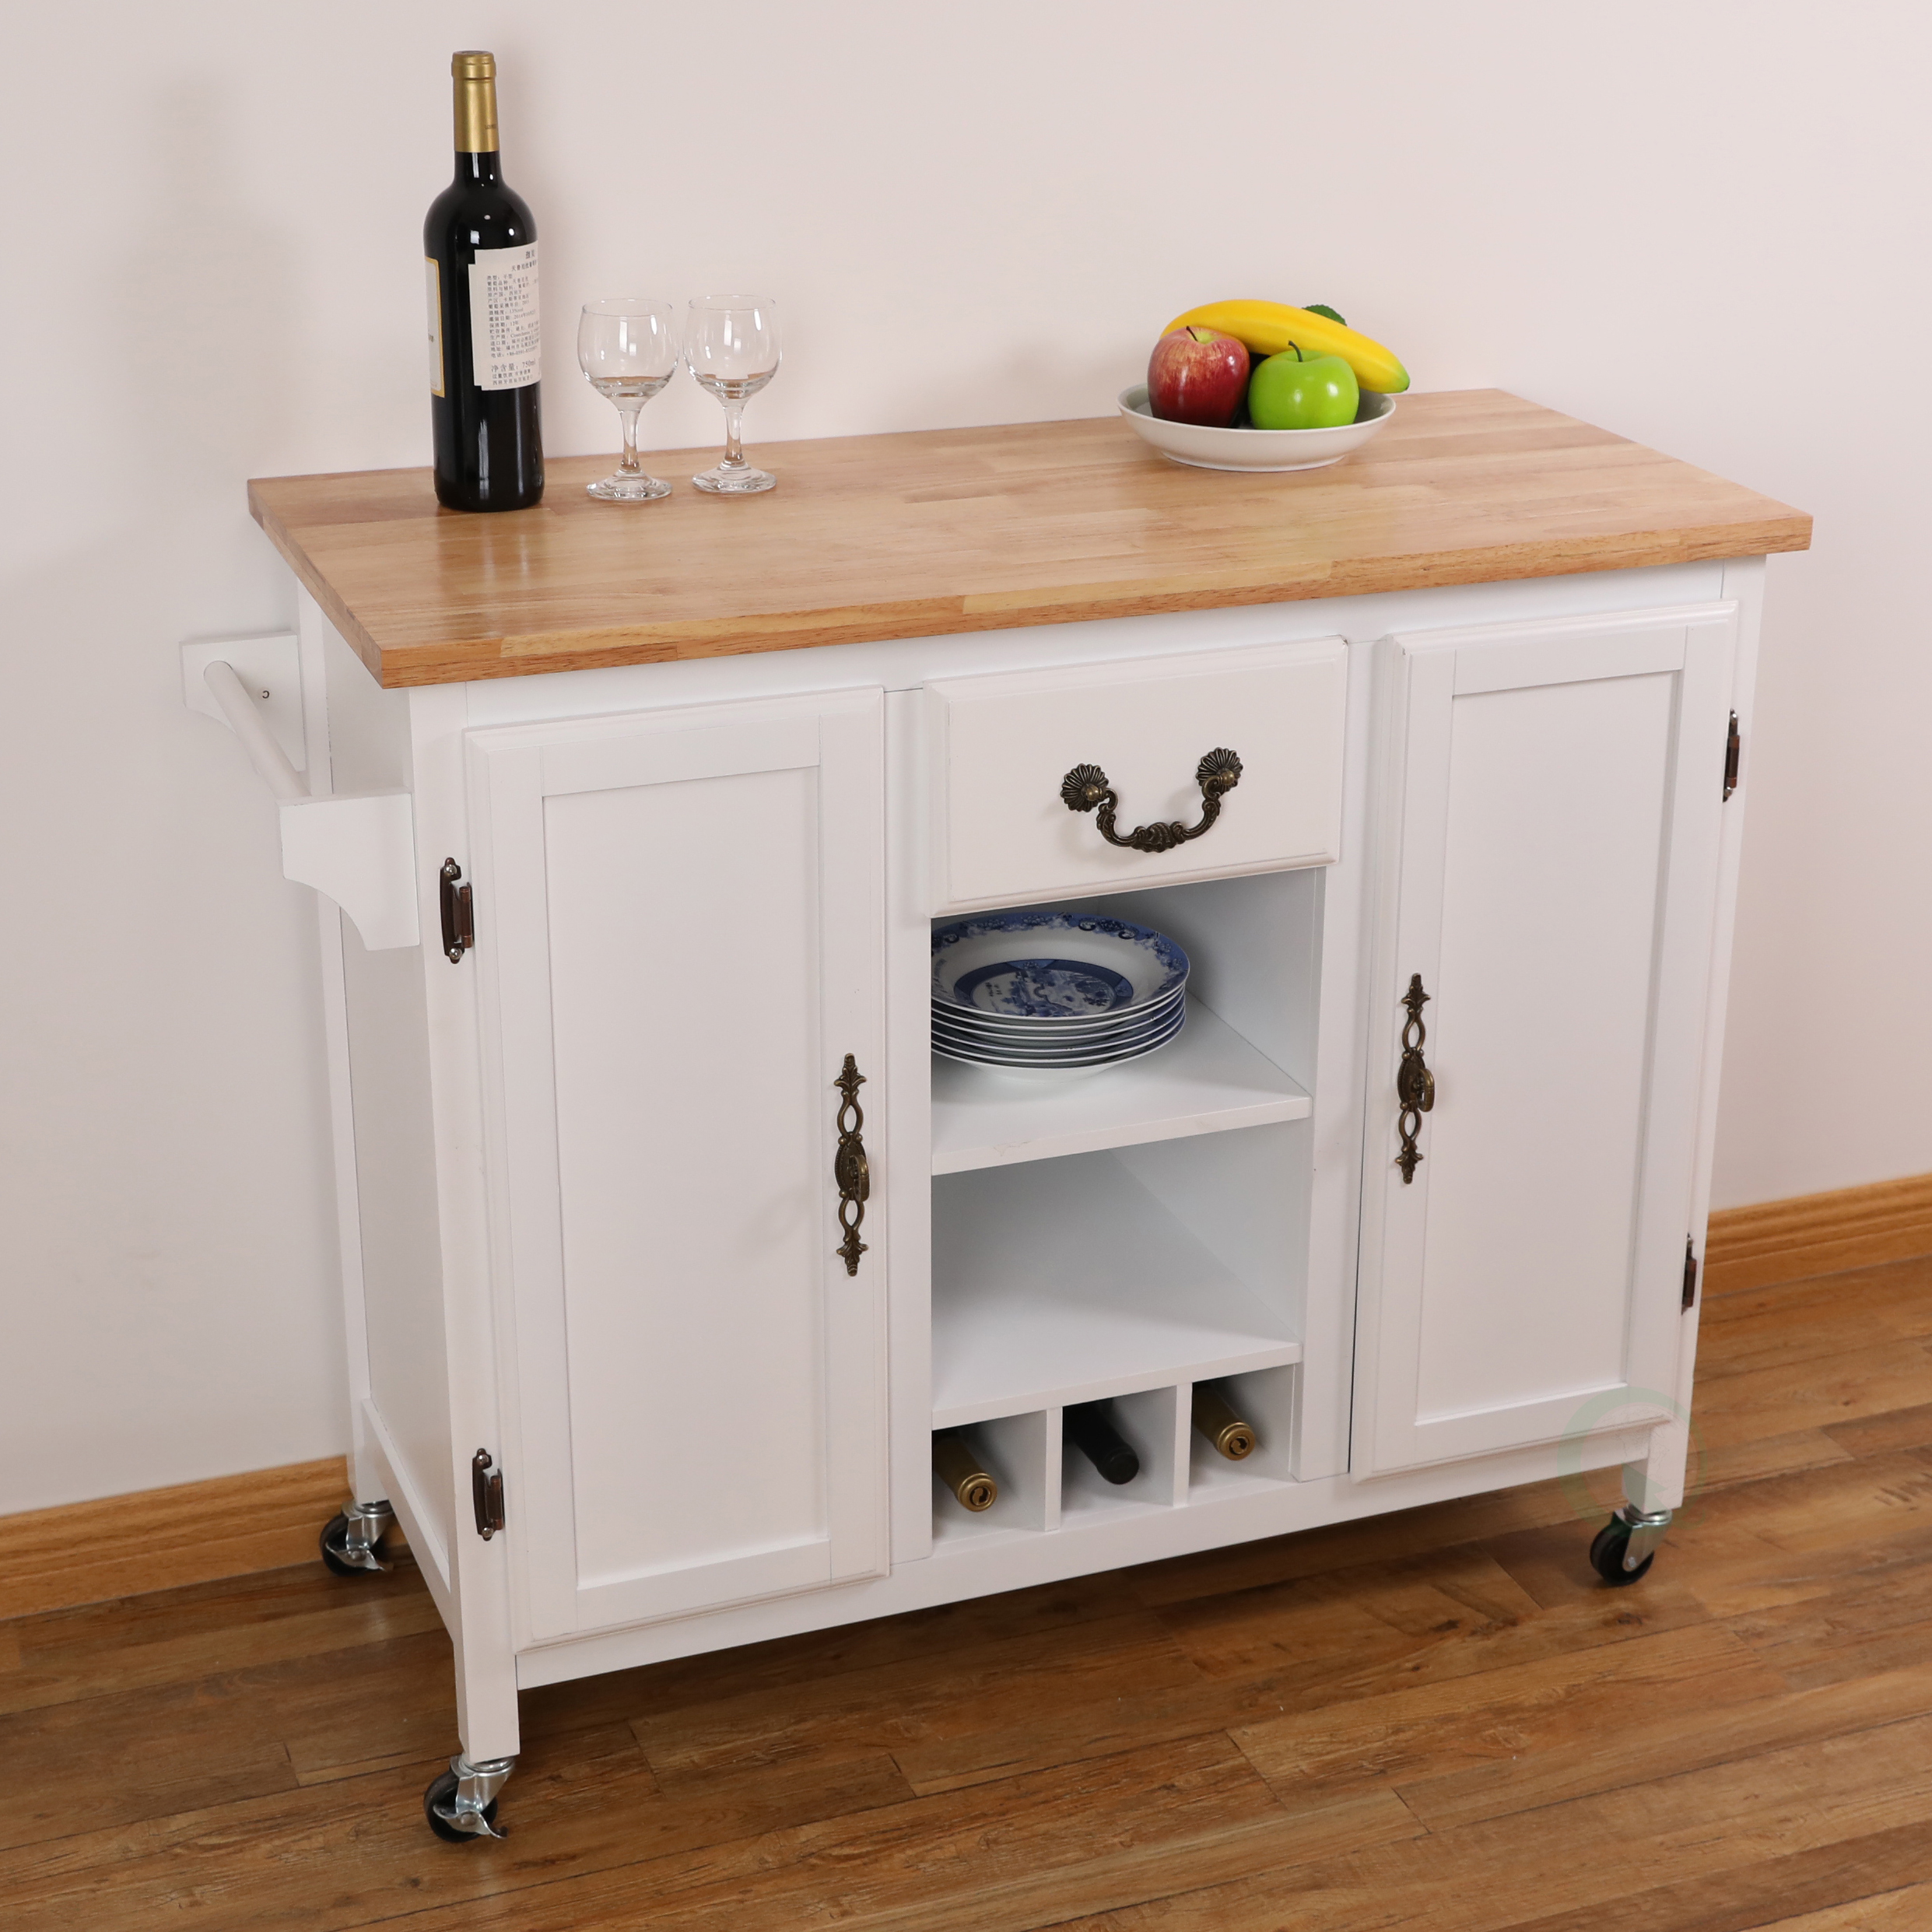 New Large Wooden Kitchen Island Trolley With Heavy Duty Rolling Casters Ebay